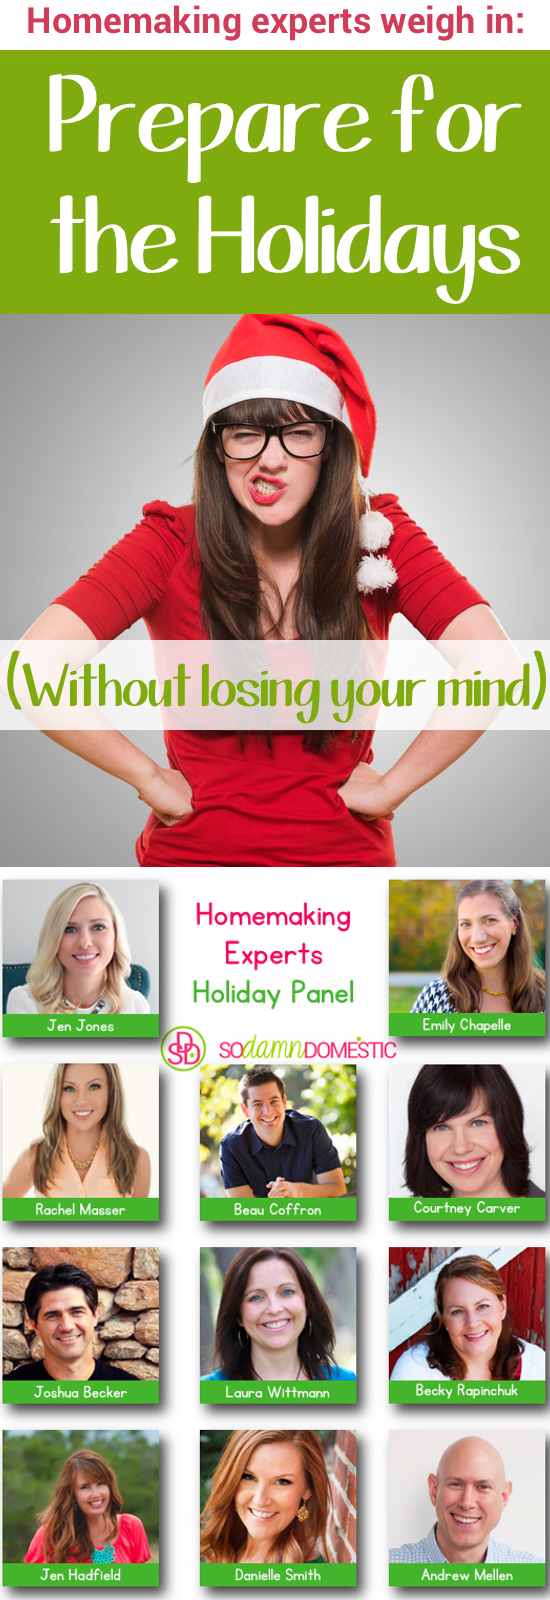 Prepare for the Holidays (Without Losing Your Mind) - Homemaking Experts Weigh In